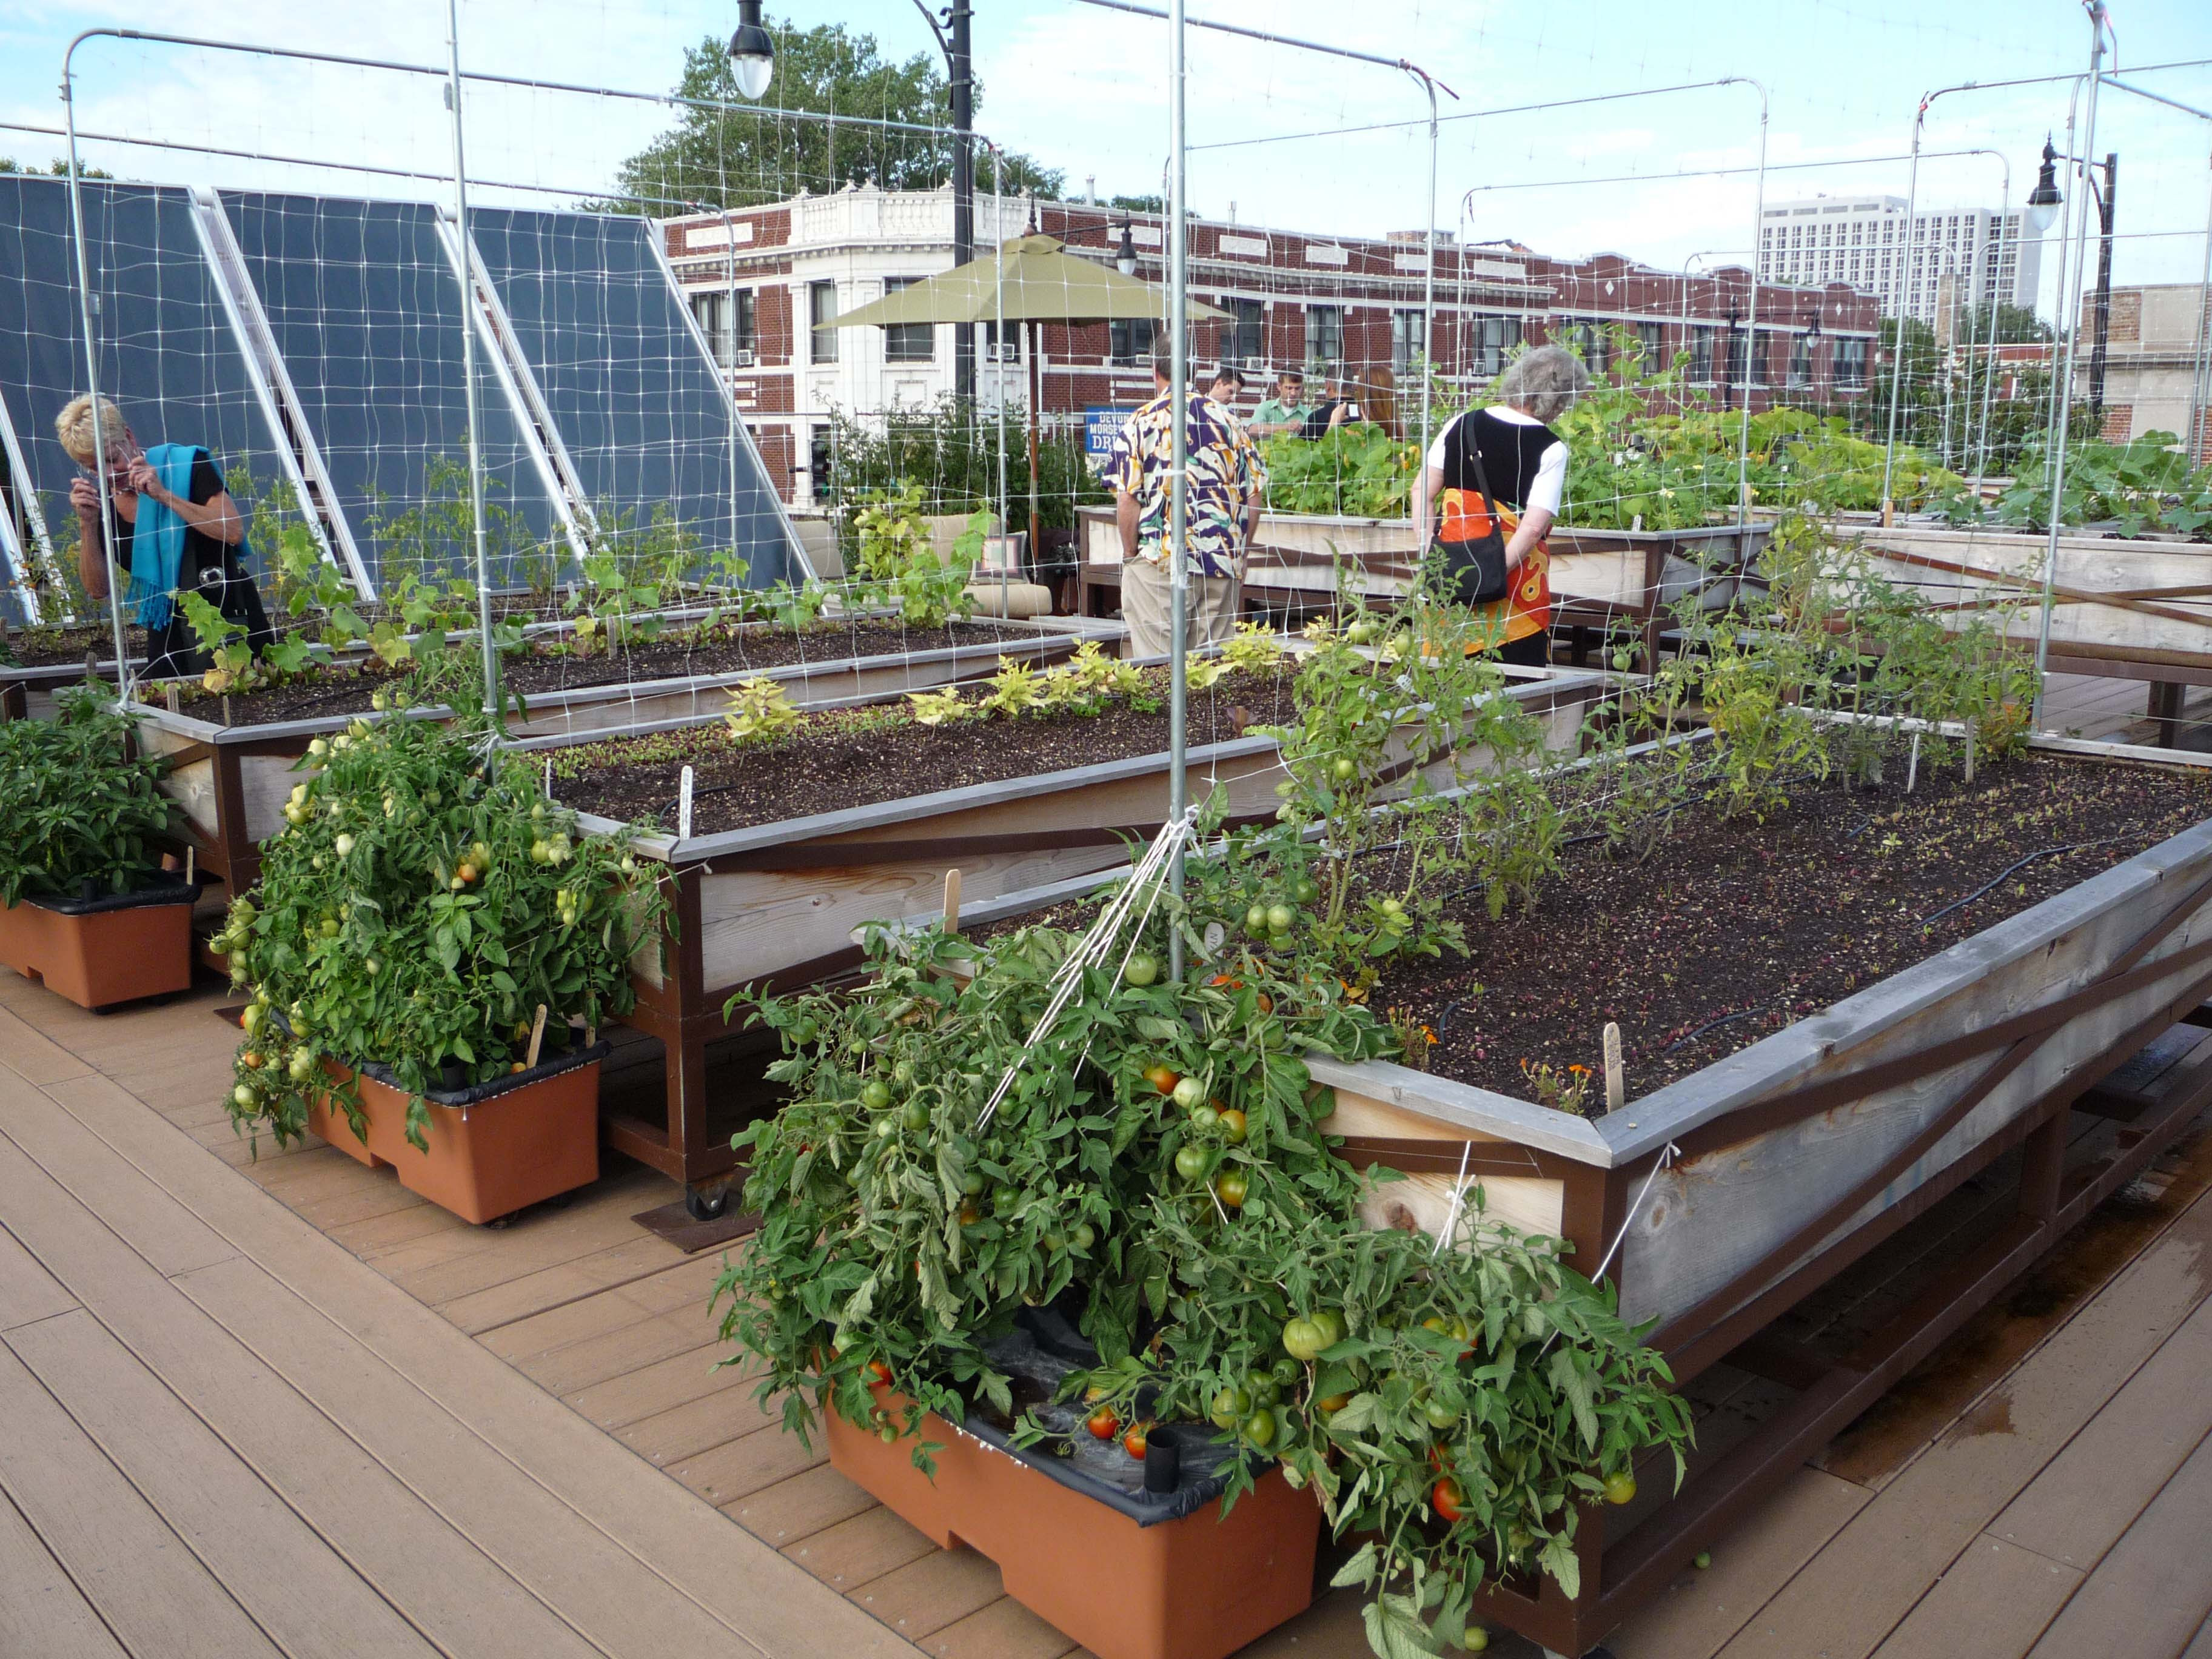 Rooftop Garden if Xzibit Pimped My Roof